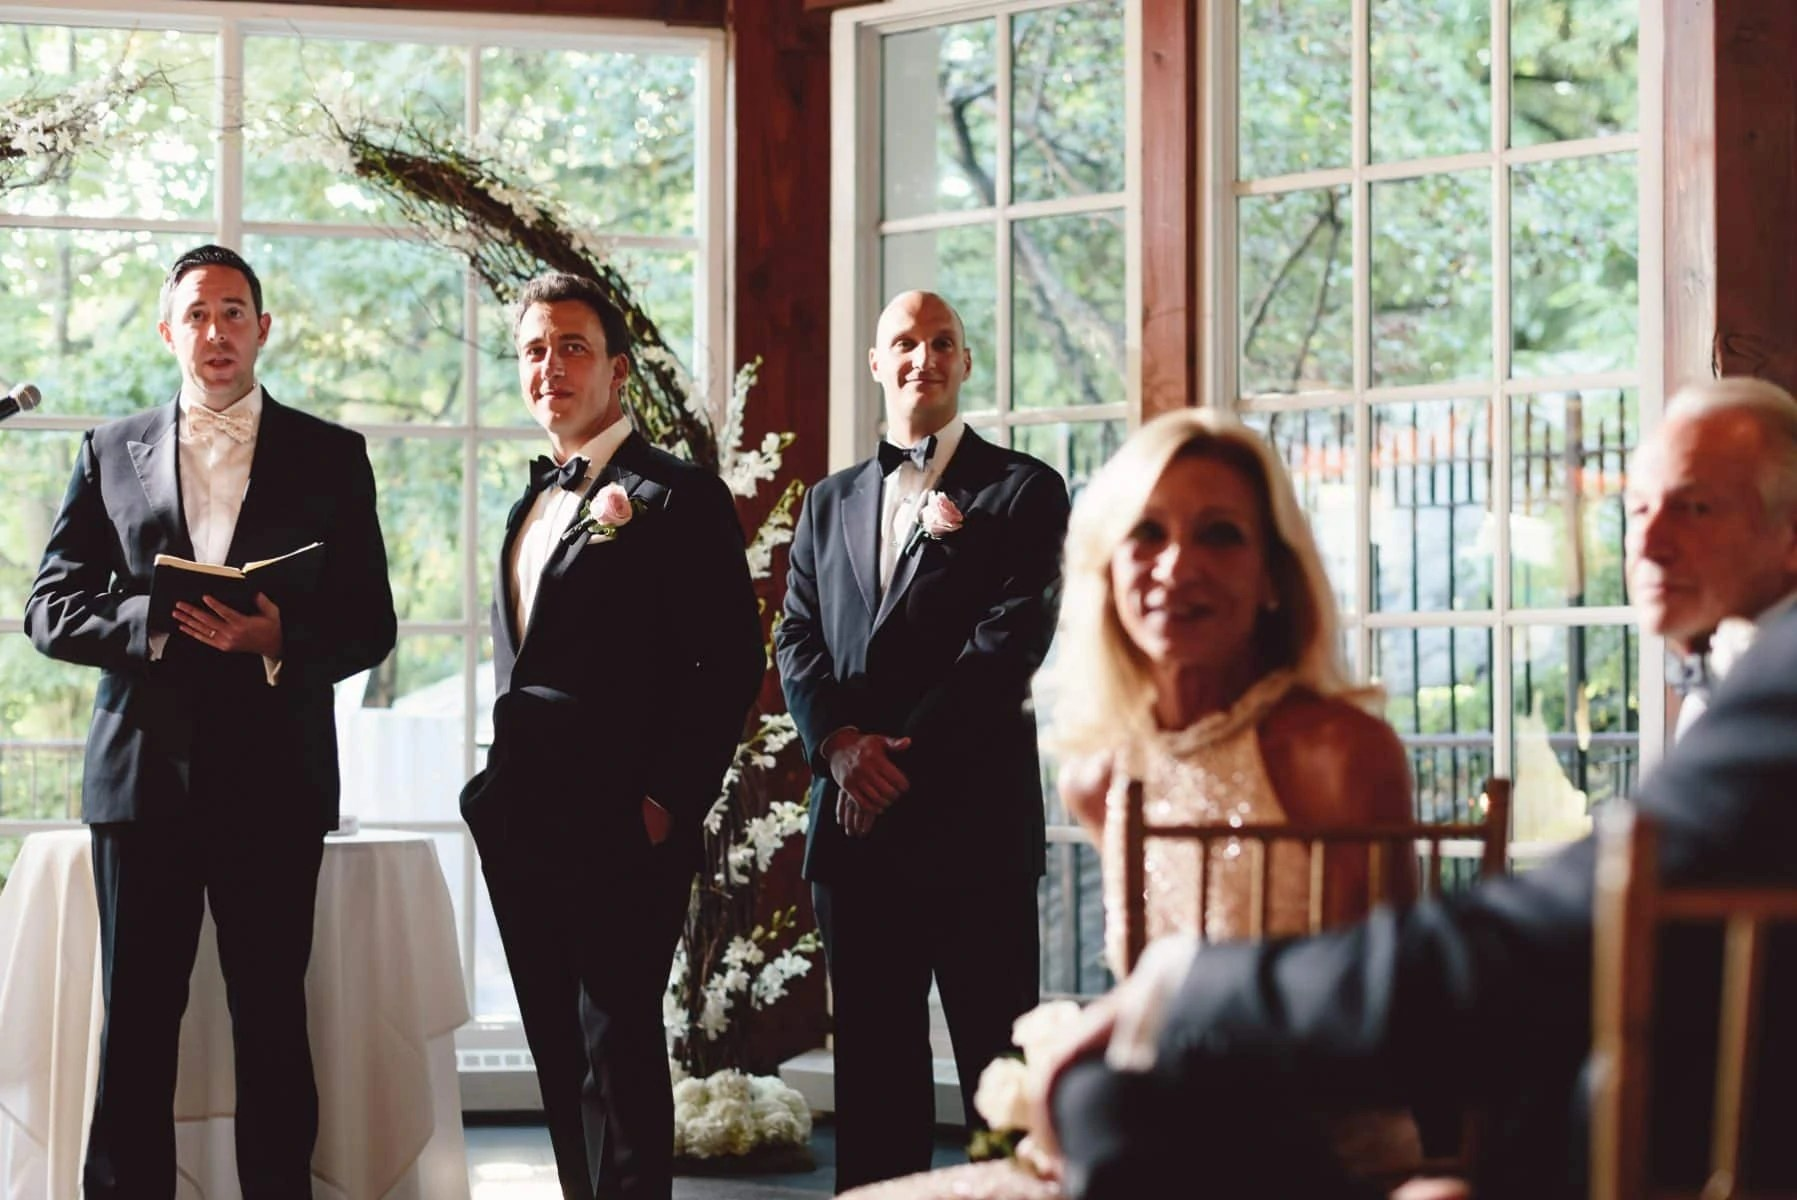 Central Park Boathouse wedding